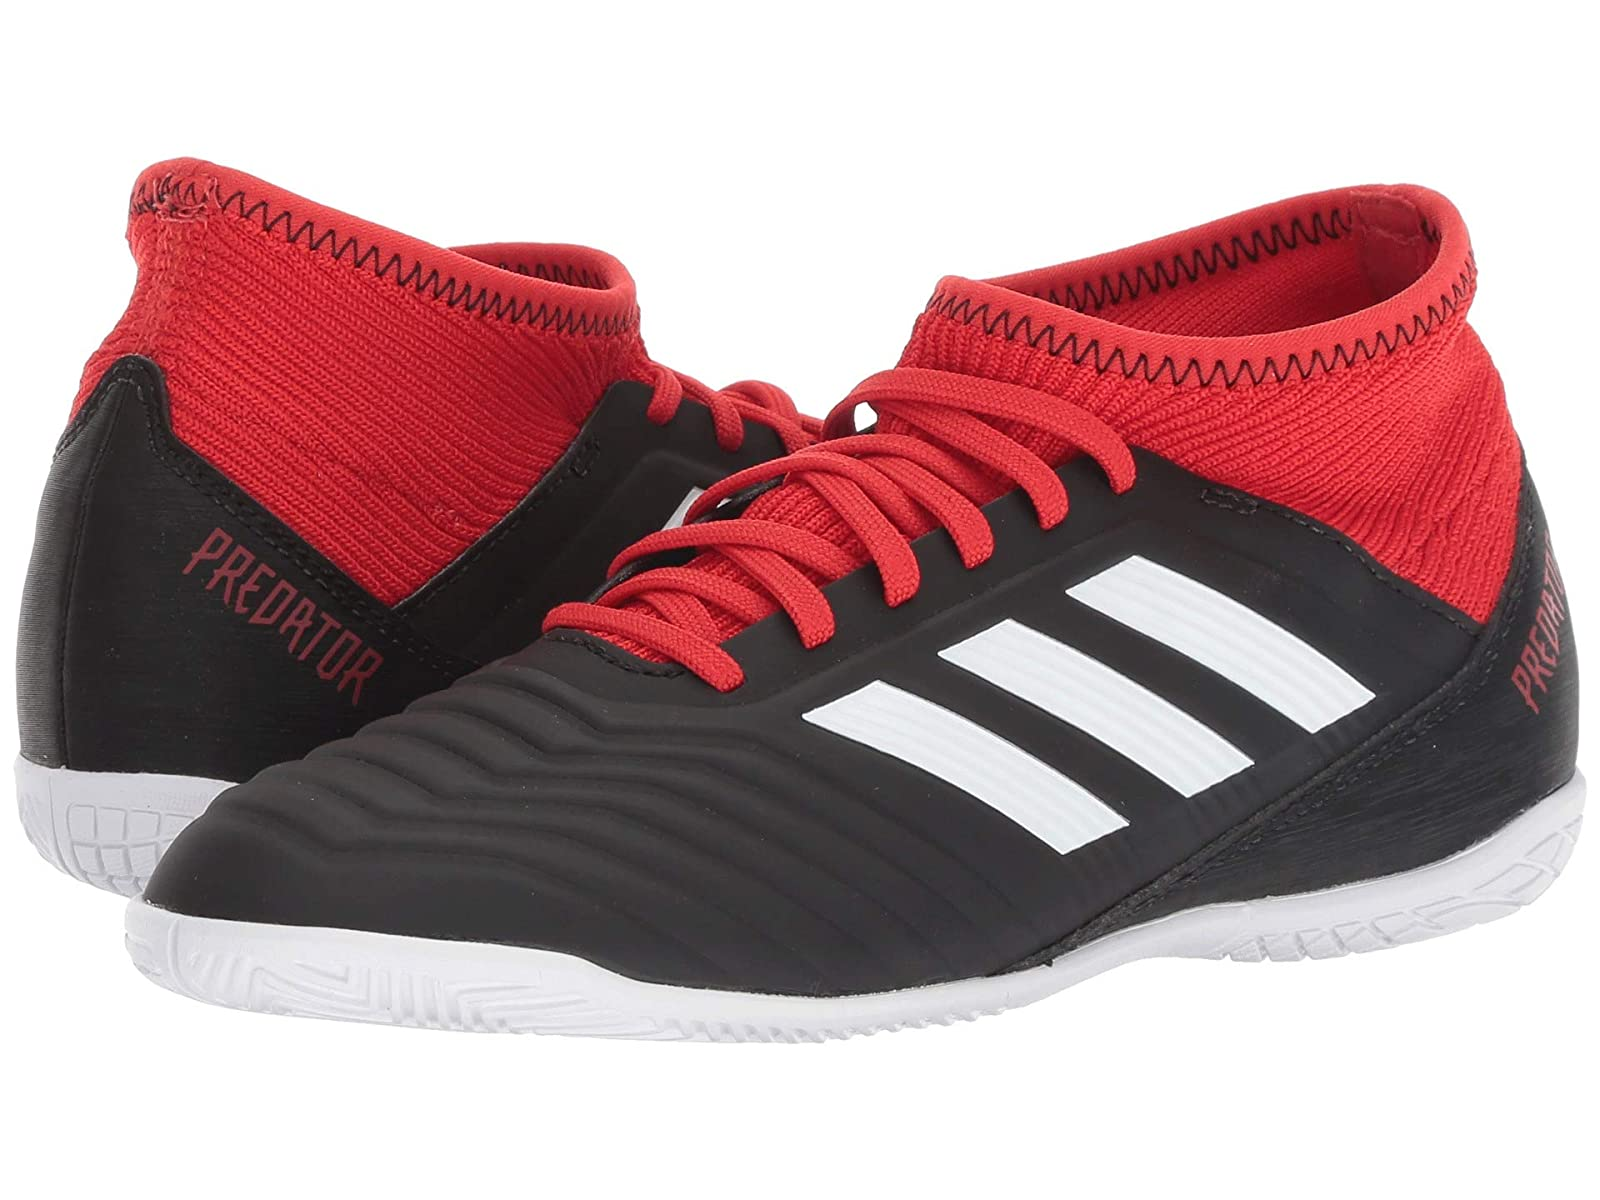 adidas Kids Predator Tango 18.3 IN Soccer (Little Kid/Big Kid)Atmospheric grades have affordable shoes